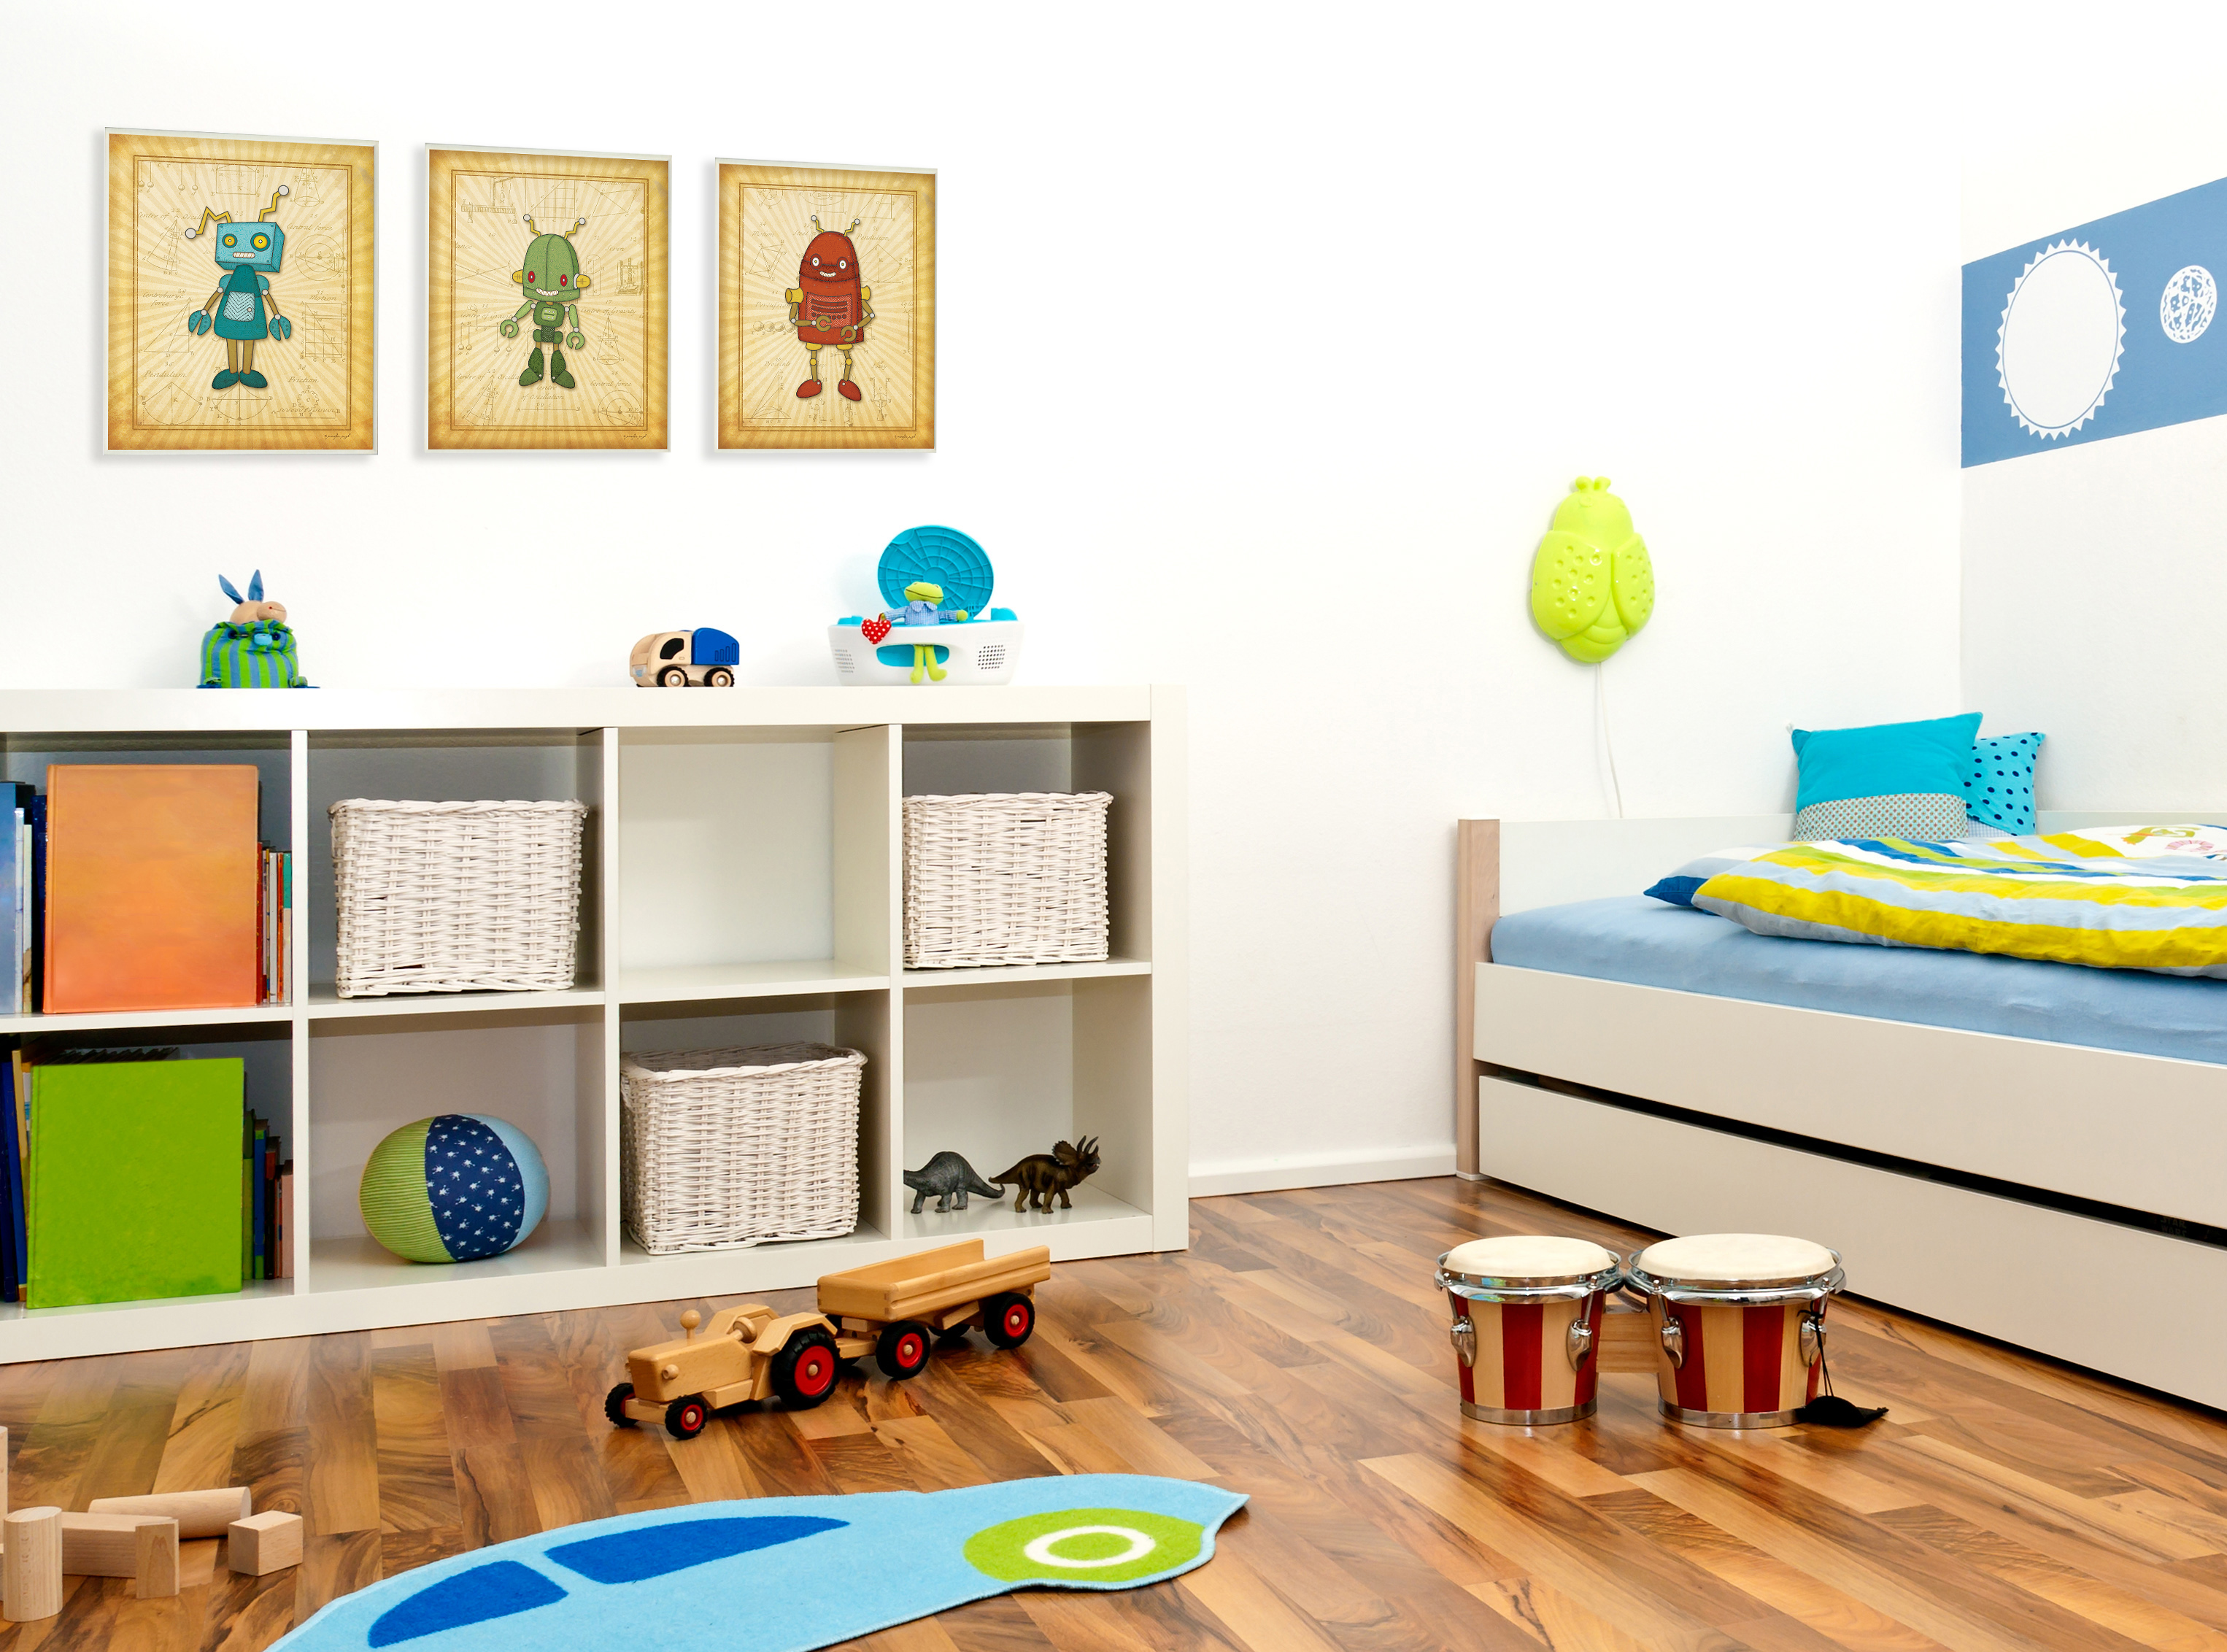 Pleasant The Kids Room By Stupell Explore Download Free Architecture Designs Grimeyleaguecom